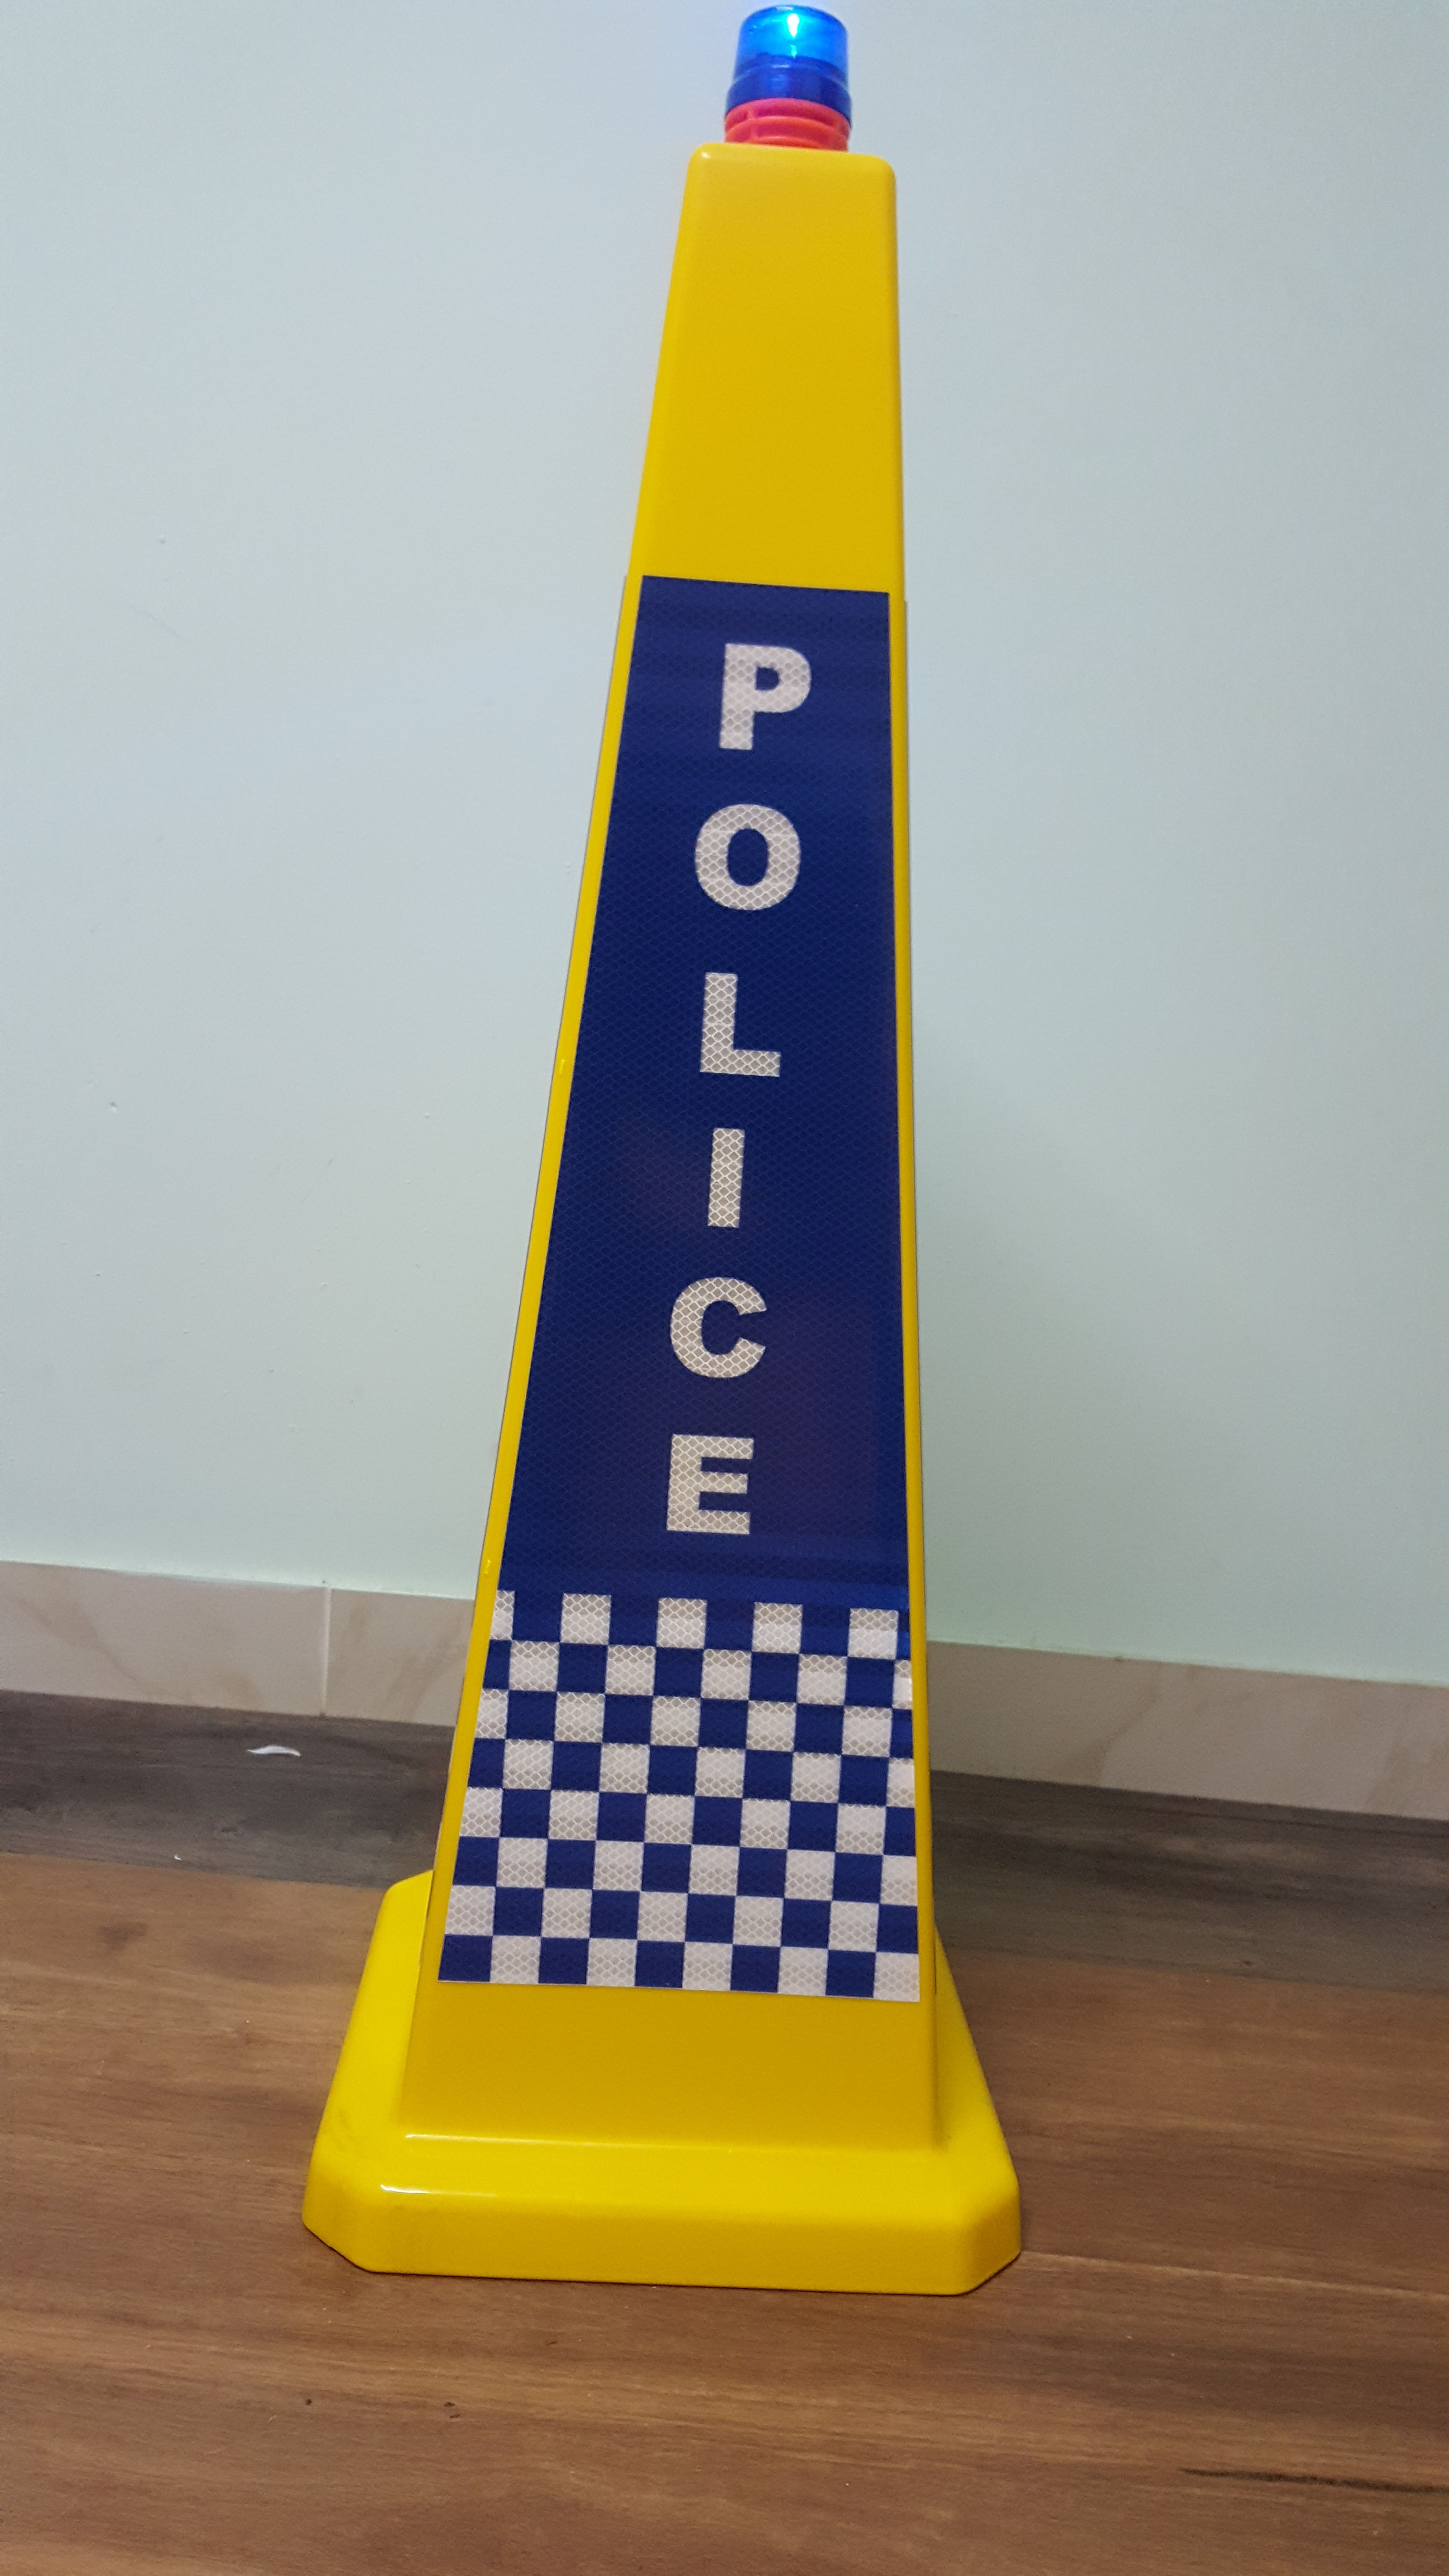 Police Traffic Cone Safety barriers and Police Cones 4